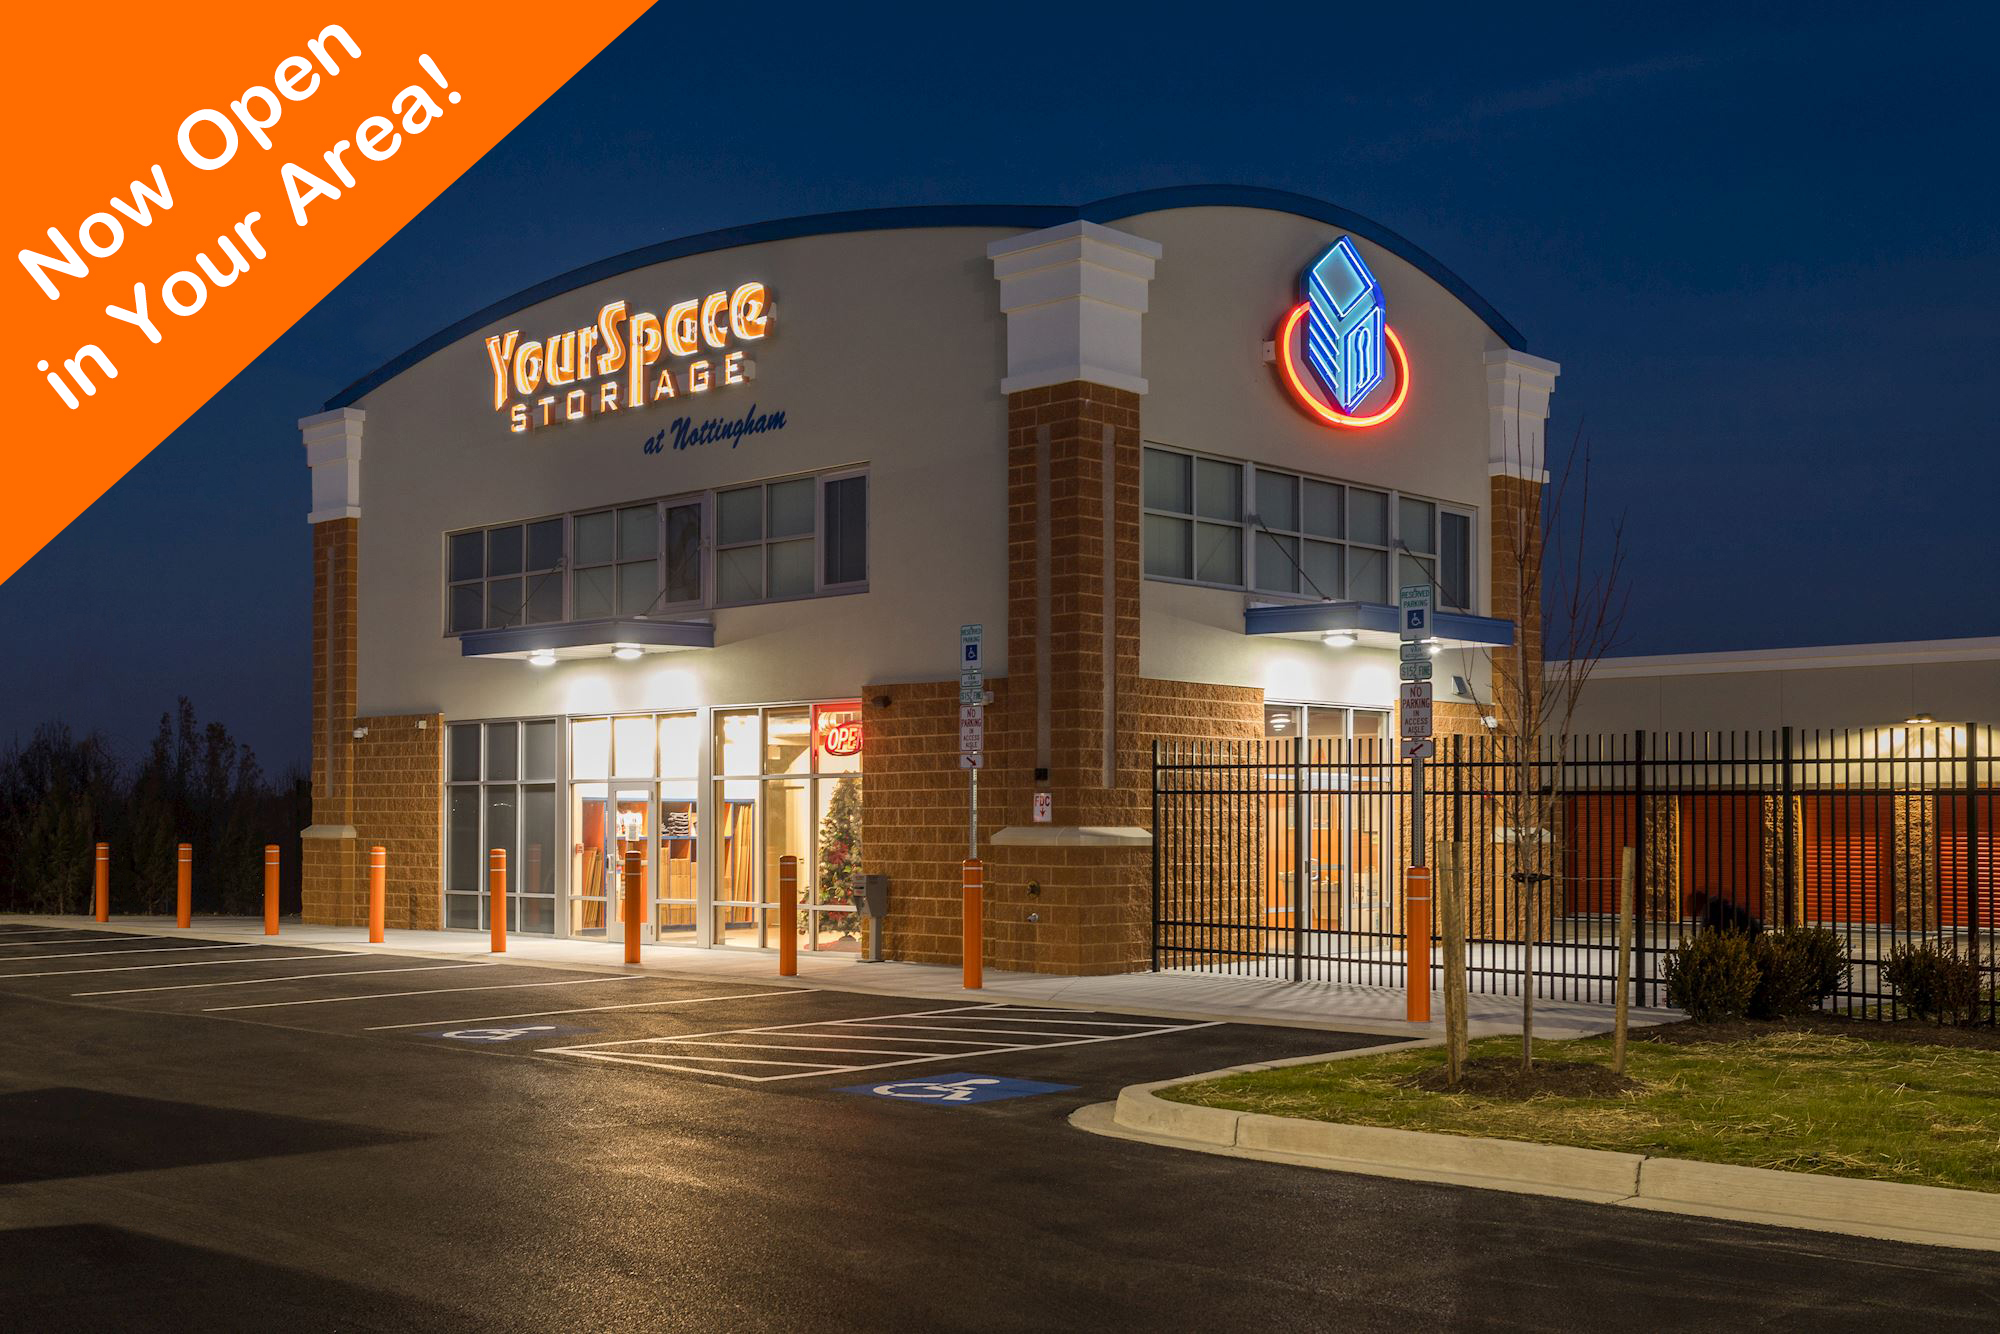 YourSpace Storage at Nottingham is now open in the Perry Hall, Rosedale, White Marsh, & Overlea Area